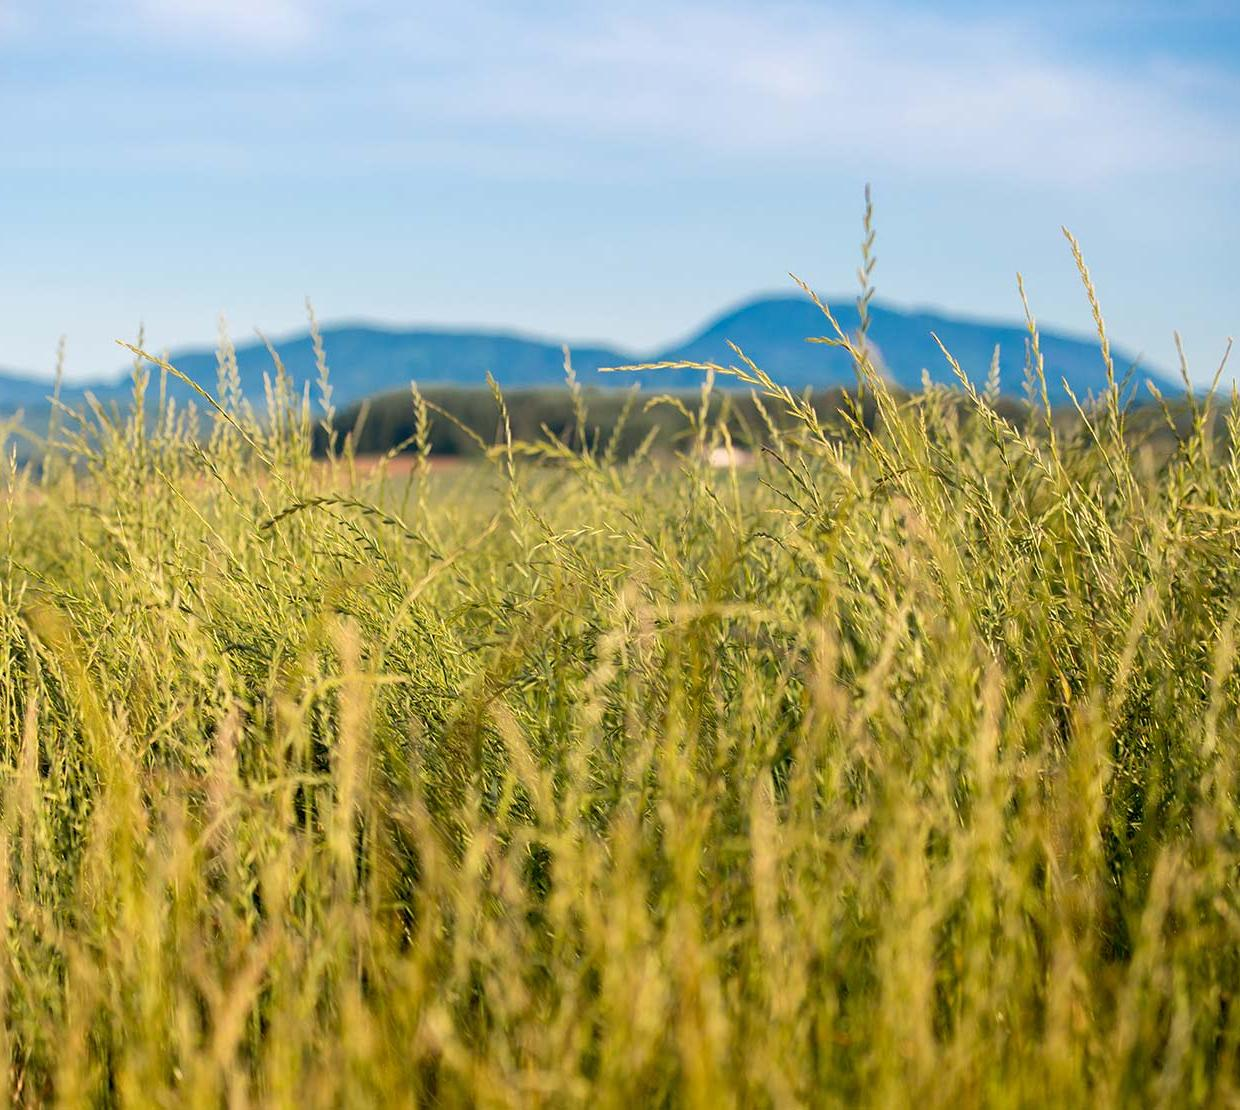 Tall grass field in front of mountain range